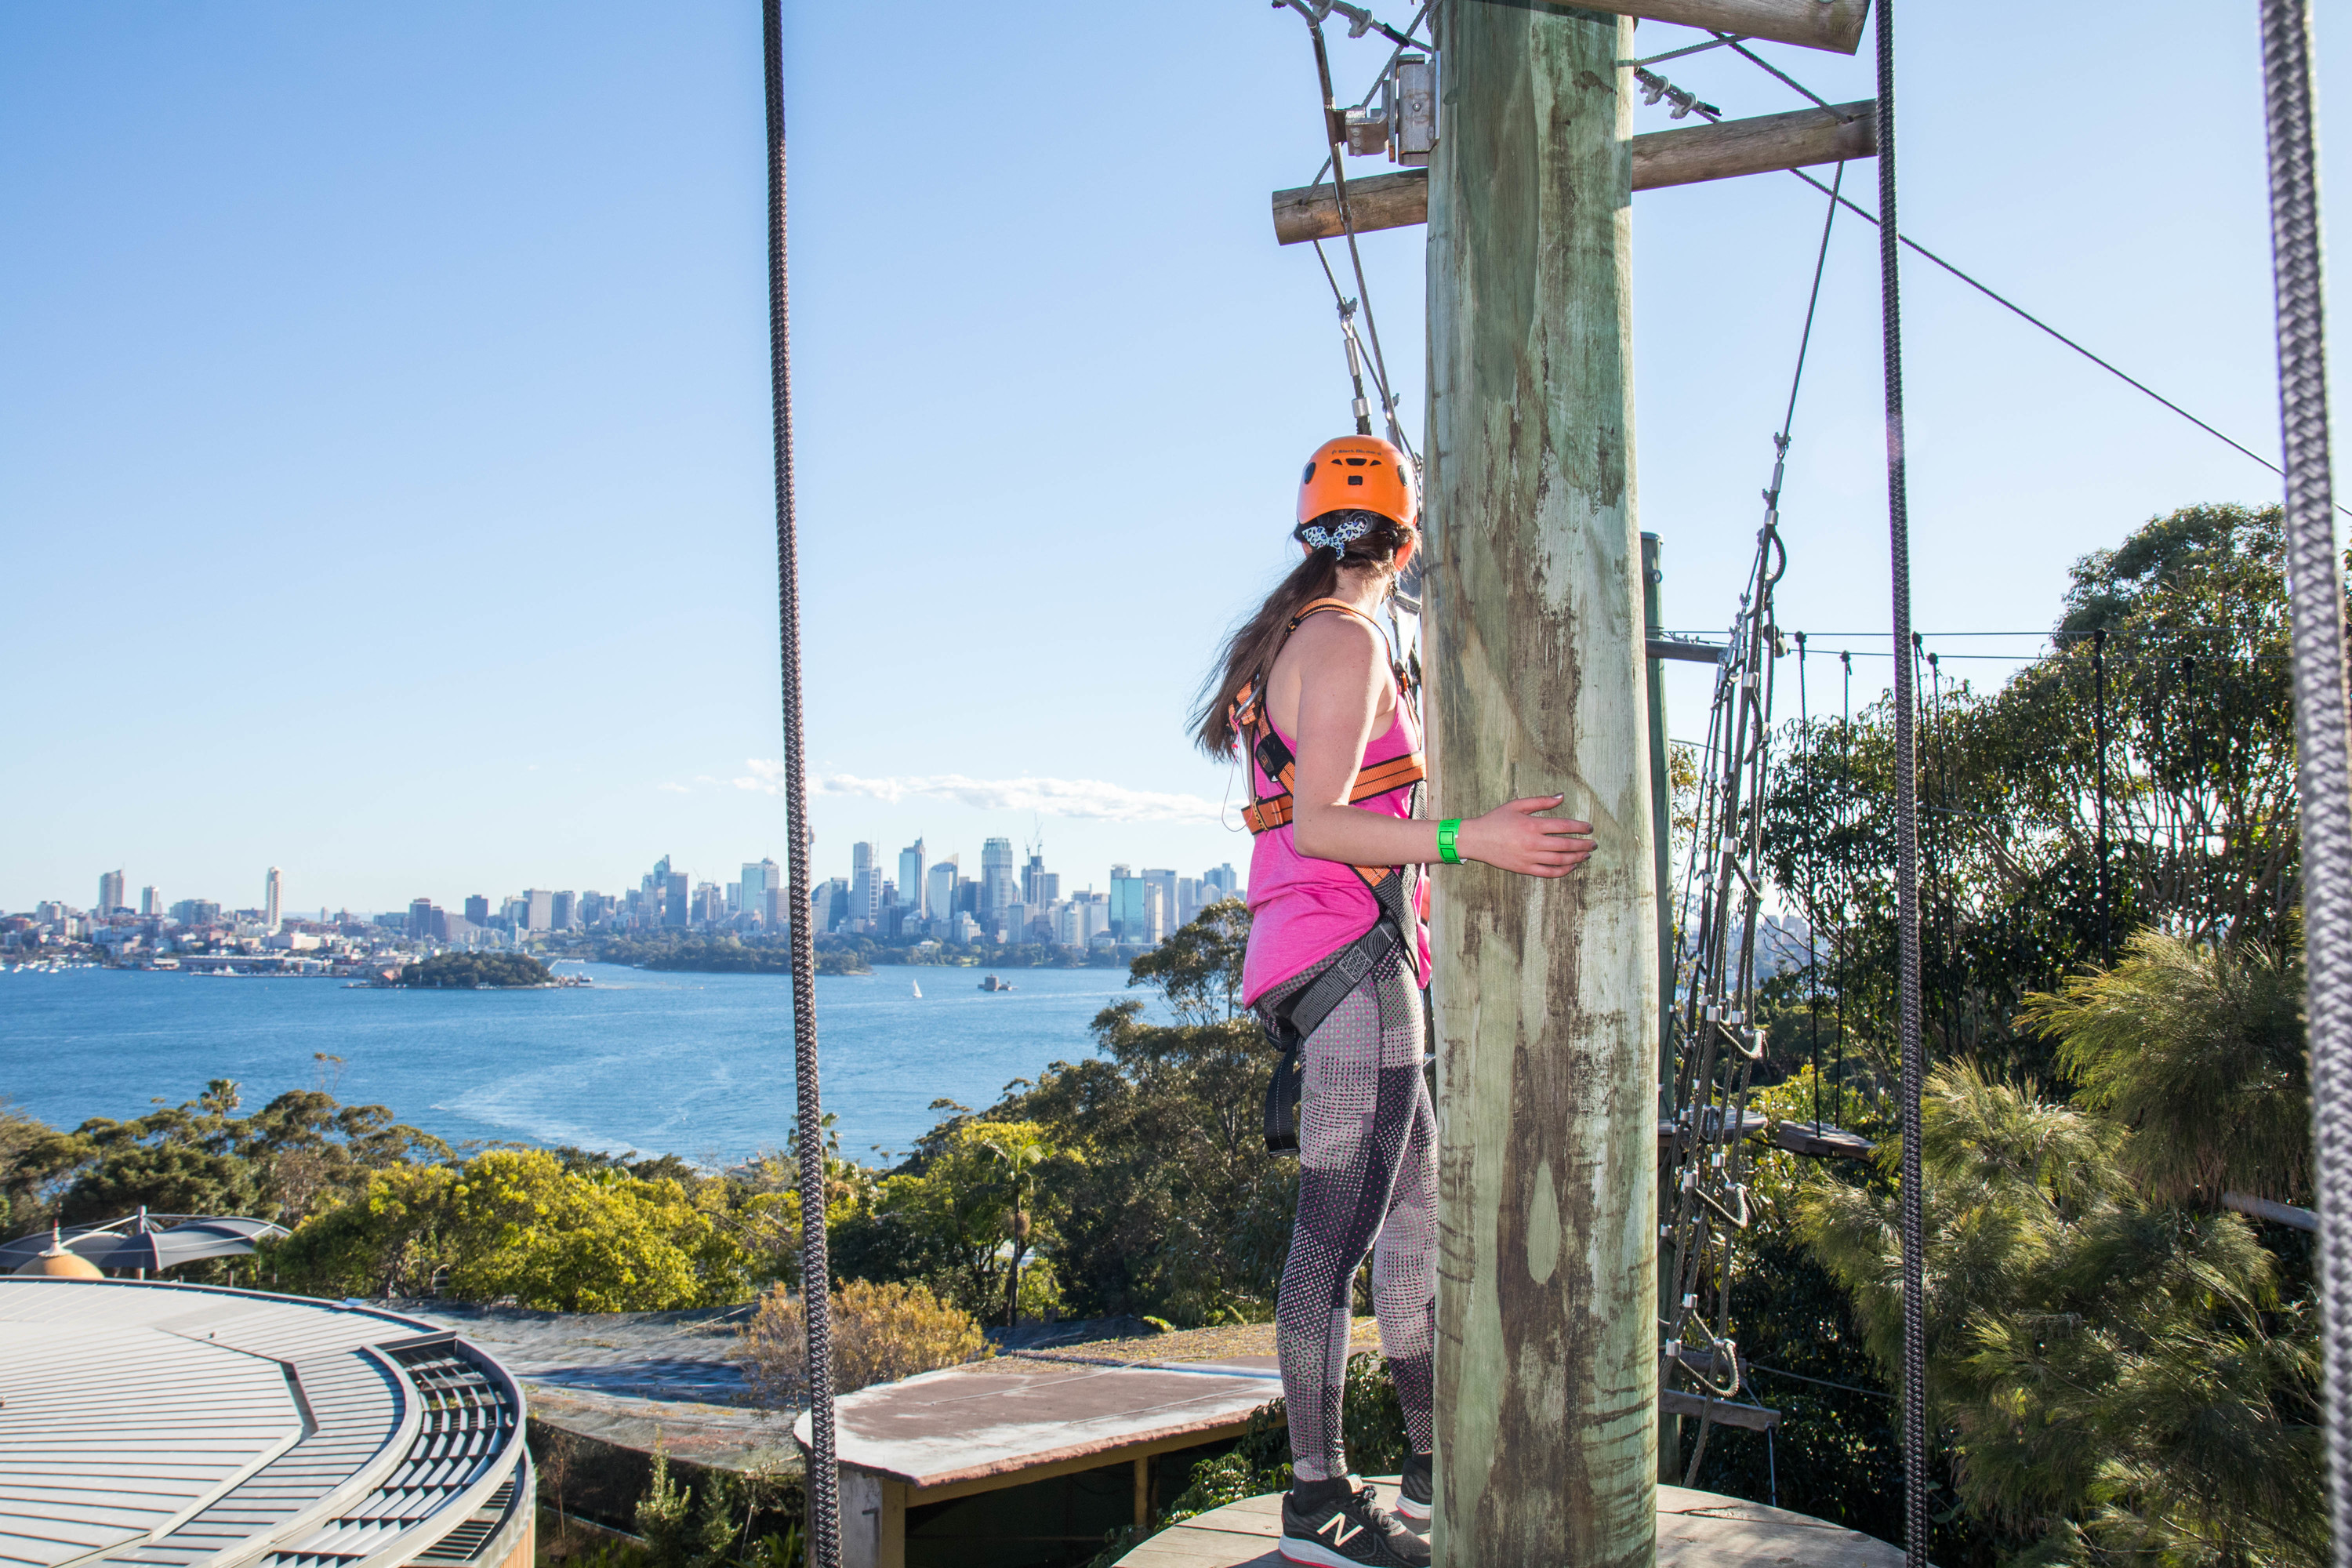 Girl standing on platform mid high ropes course at Taronga Zoo, looking at the view of the harbour